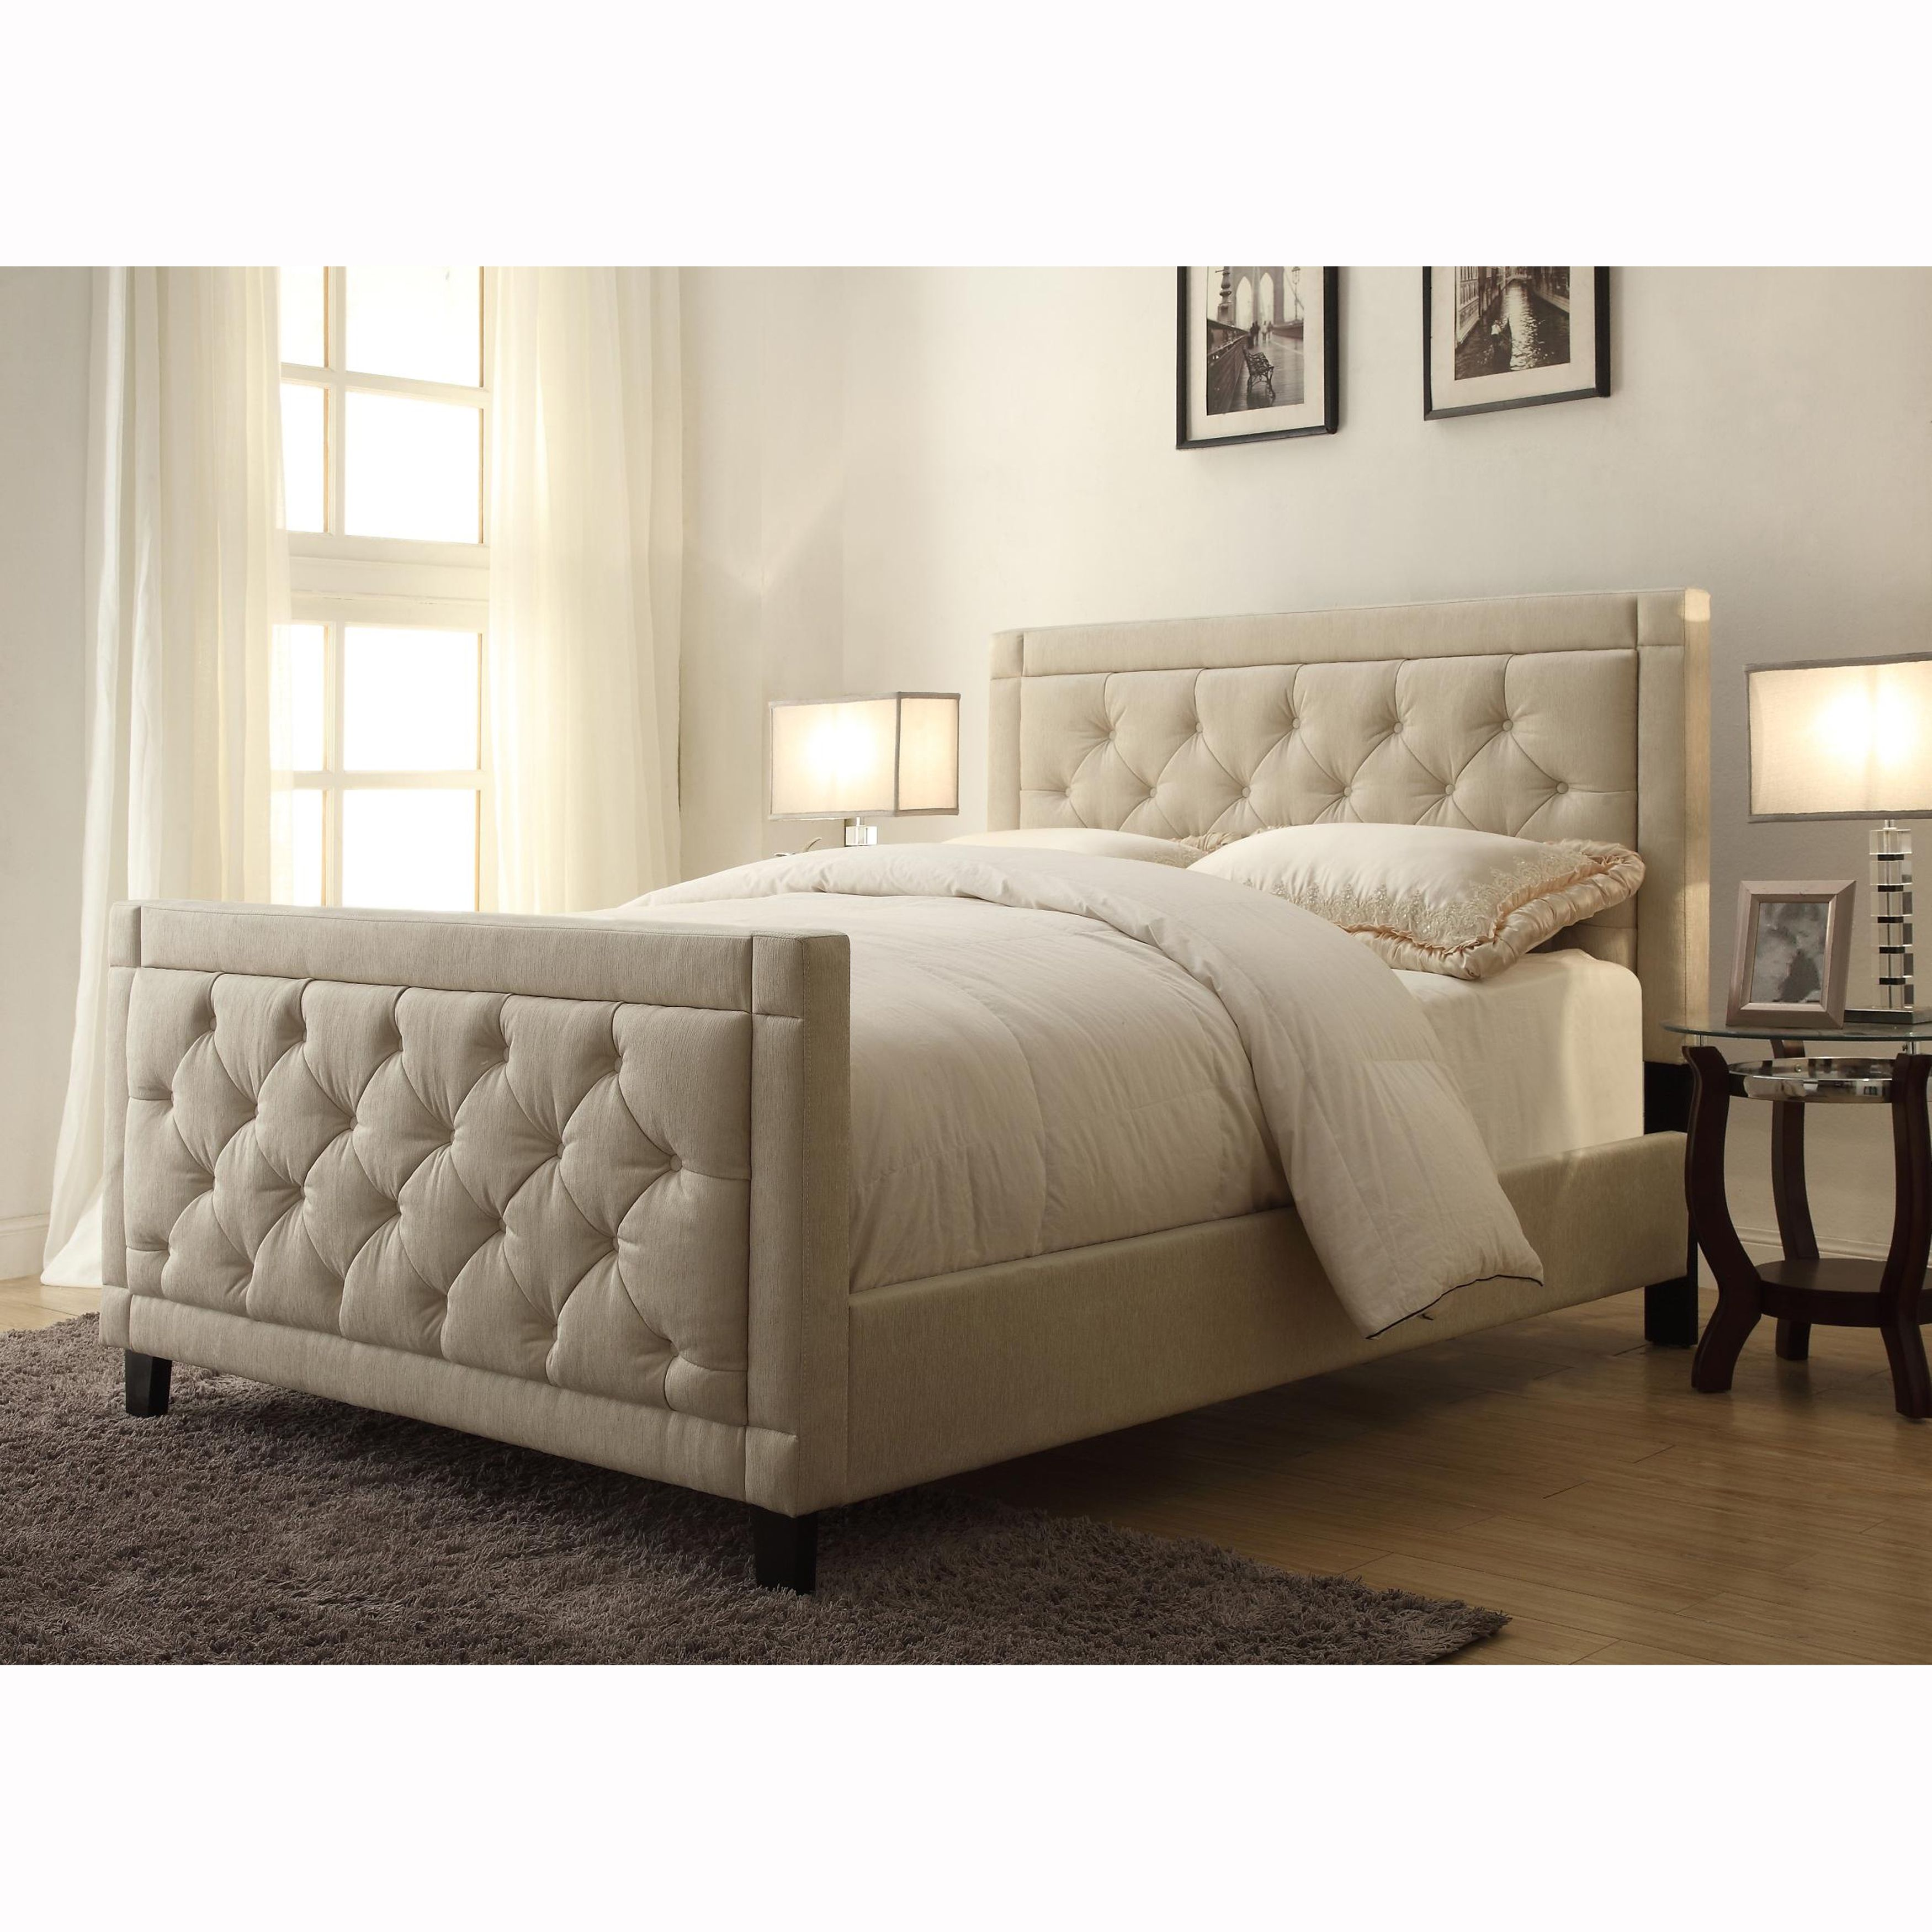 Best Natural Linen Queen Size Button Tufted Upholstered Bed 400 x 300